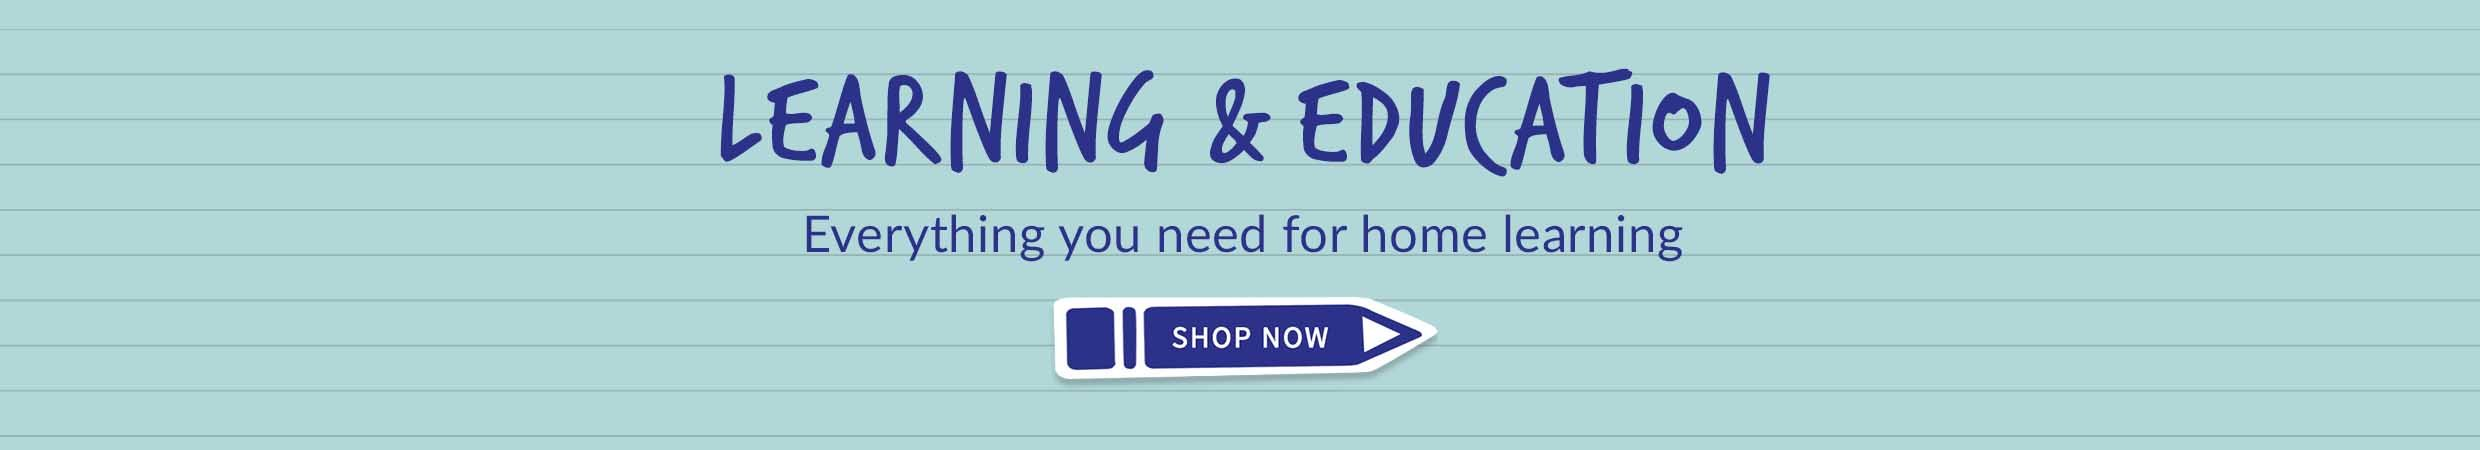 everything you need for learning at home